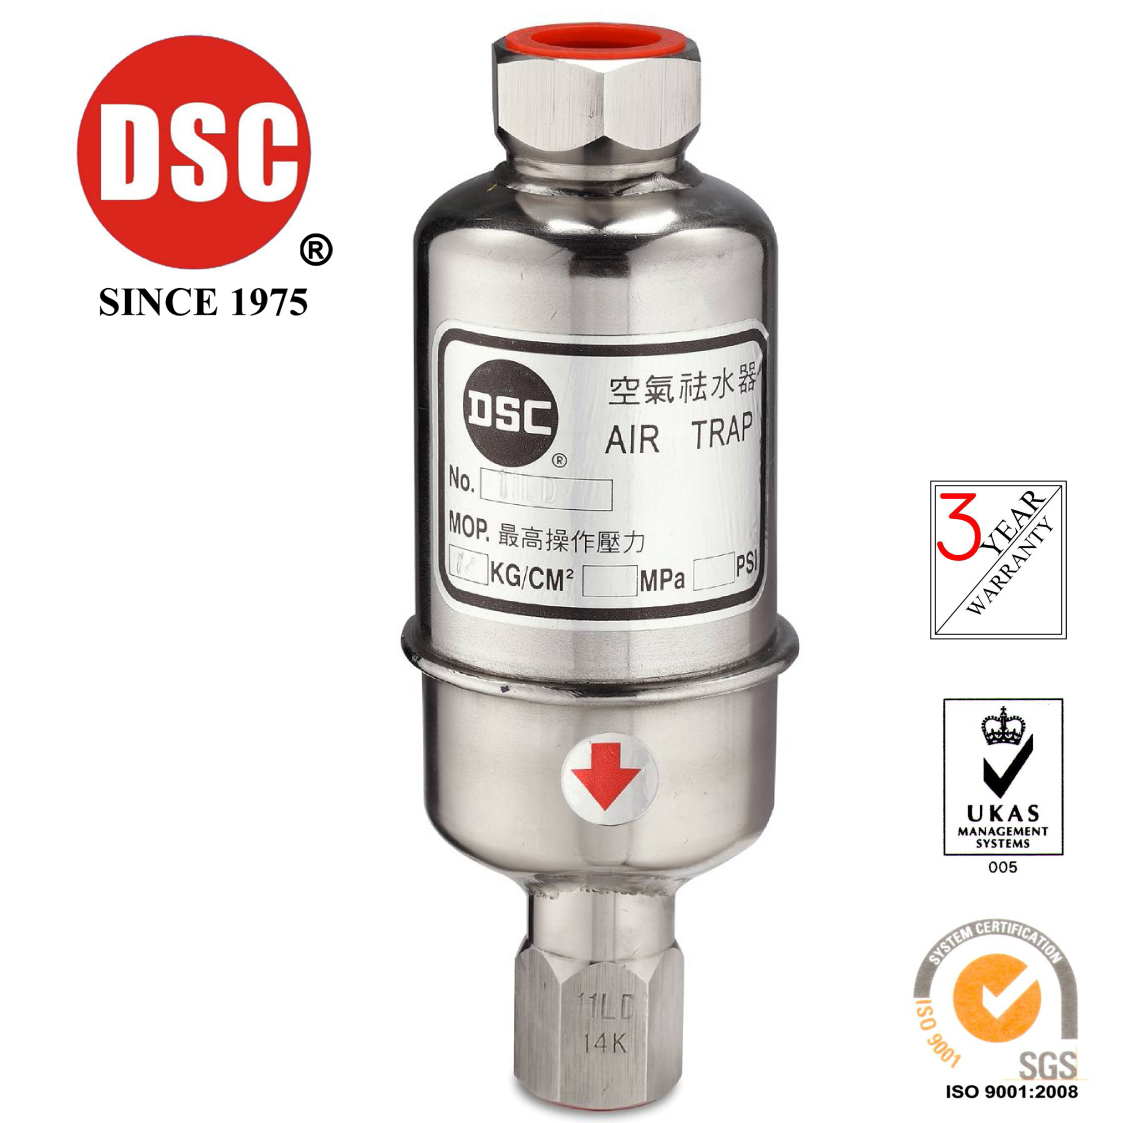 Taiwan DSC 11LD all stainless steel air trapTaiwan DSC 11LD all stainless steel air trap